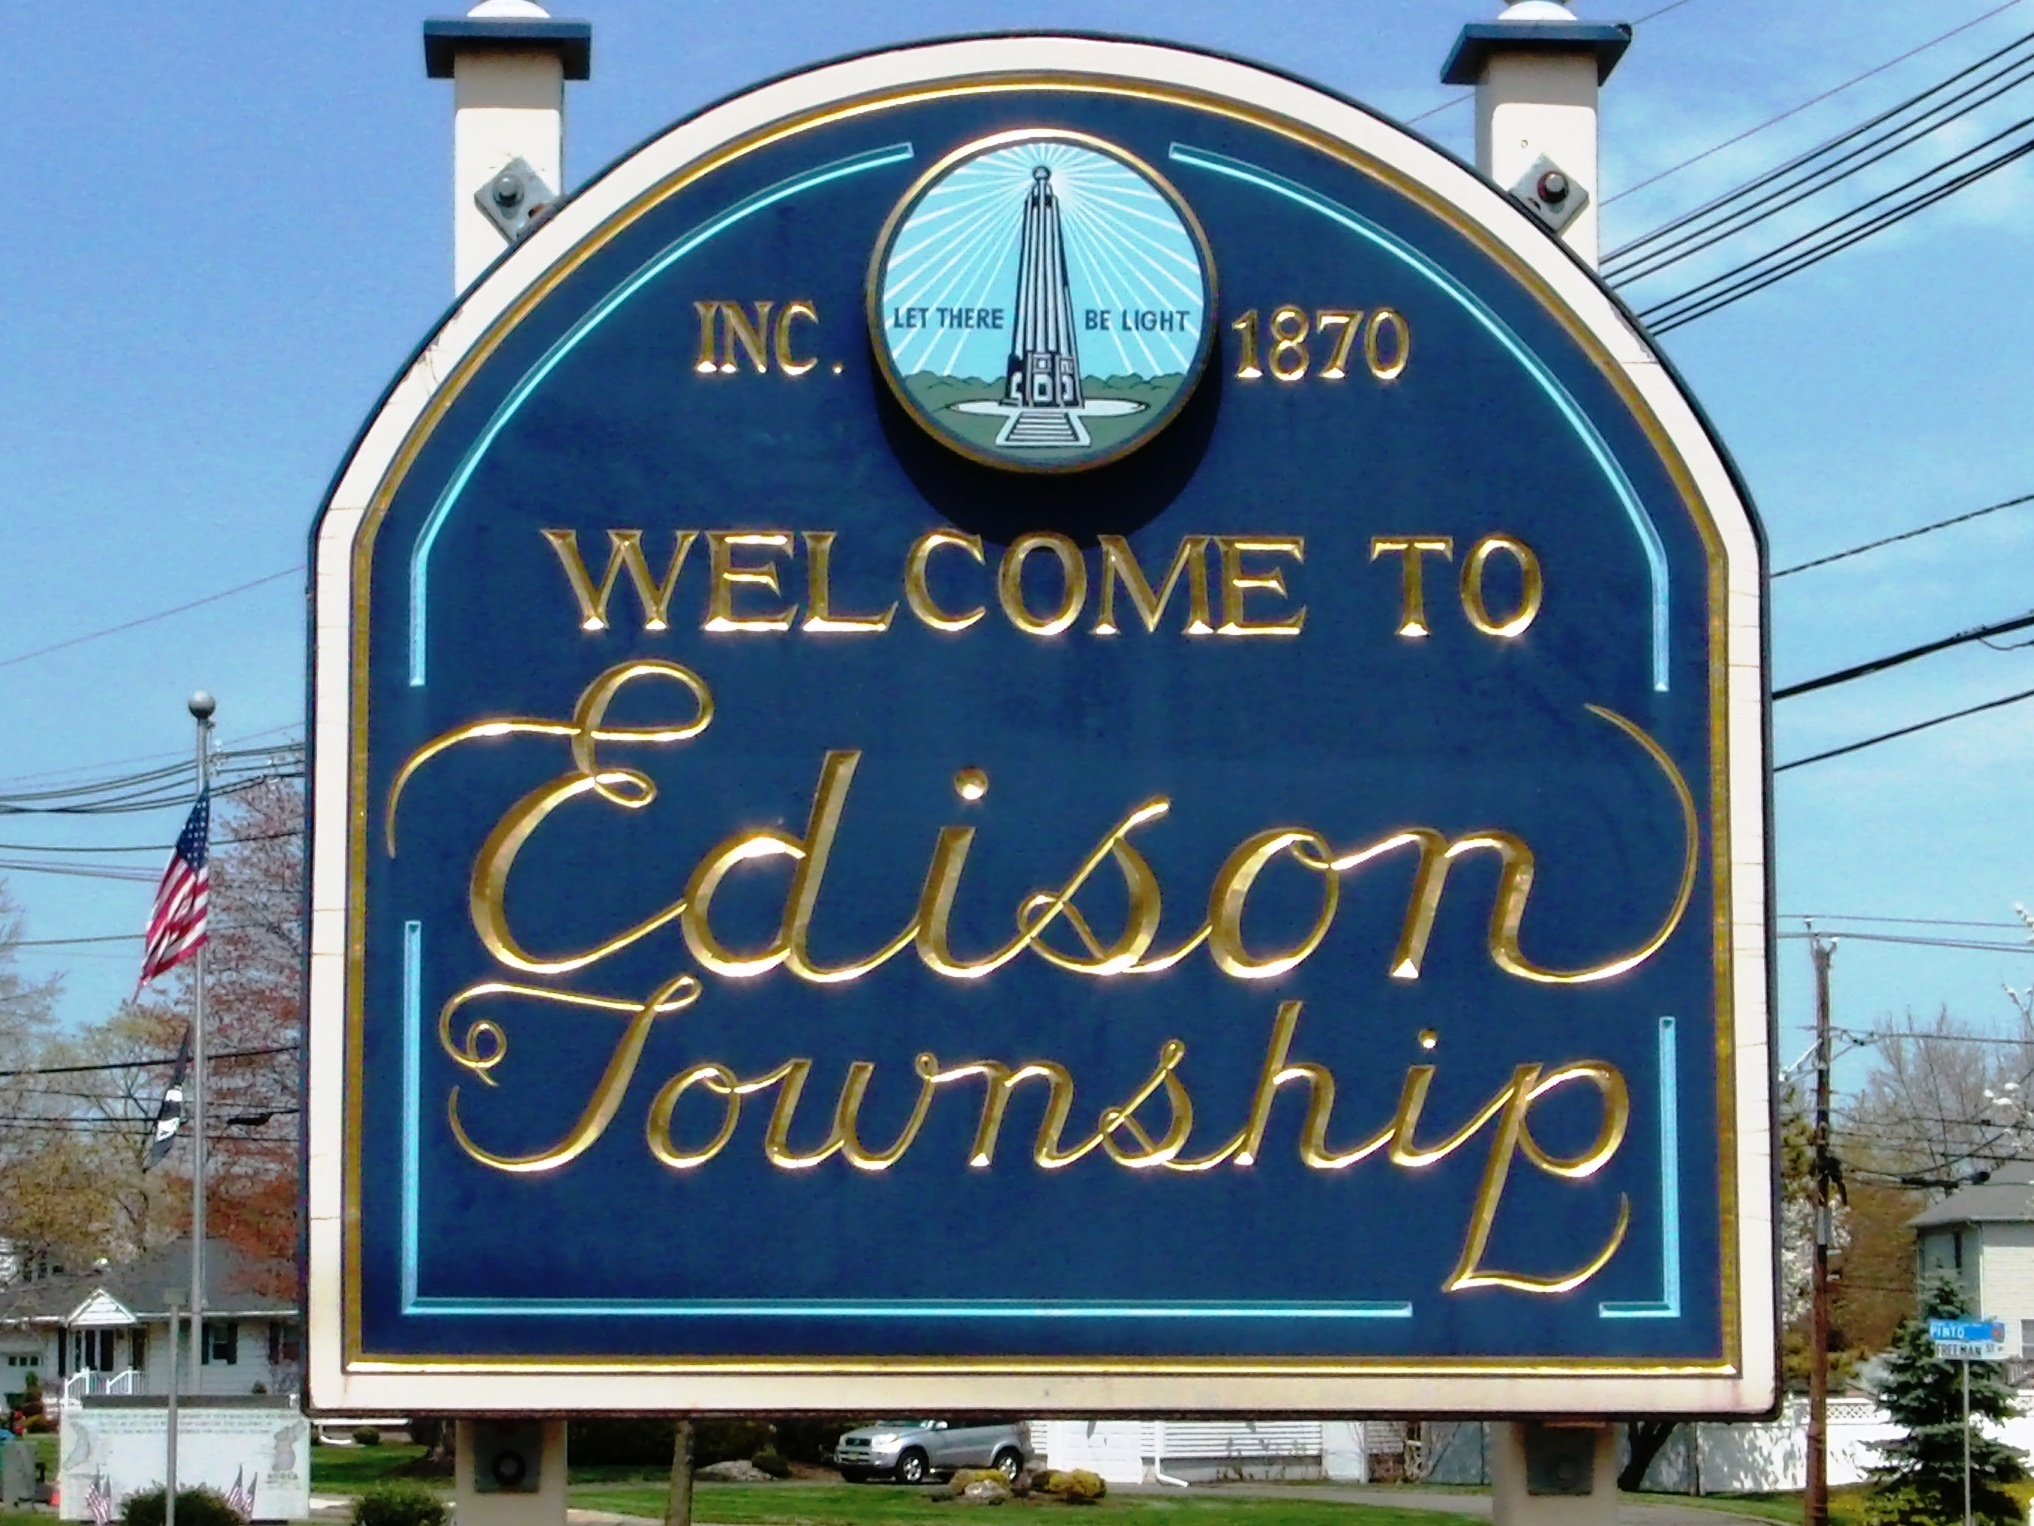 be7f2c9c53413aedf65a_Sign_Welcome_To_Edison__3_.jpg